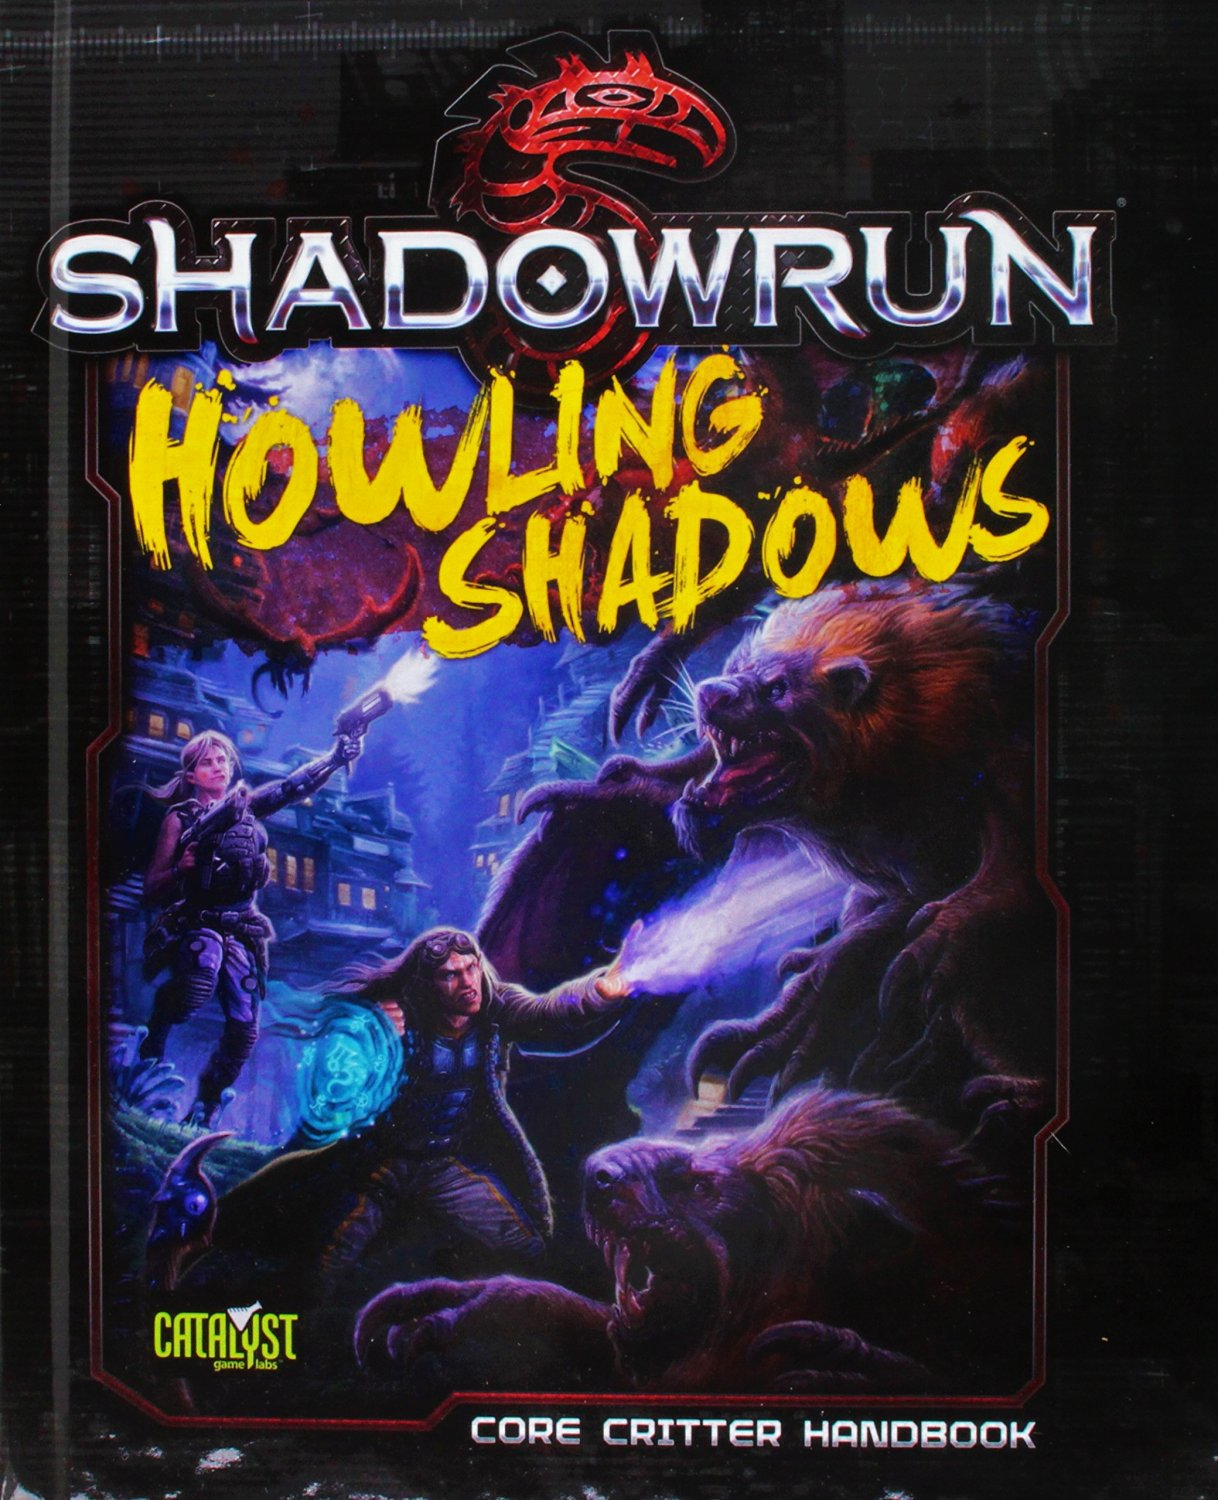 Shadowrun (5e) Howling Shadows - Role Playing Game (RPG) Core Critter Handbook [eBook]